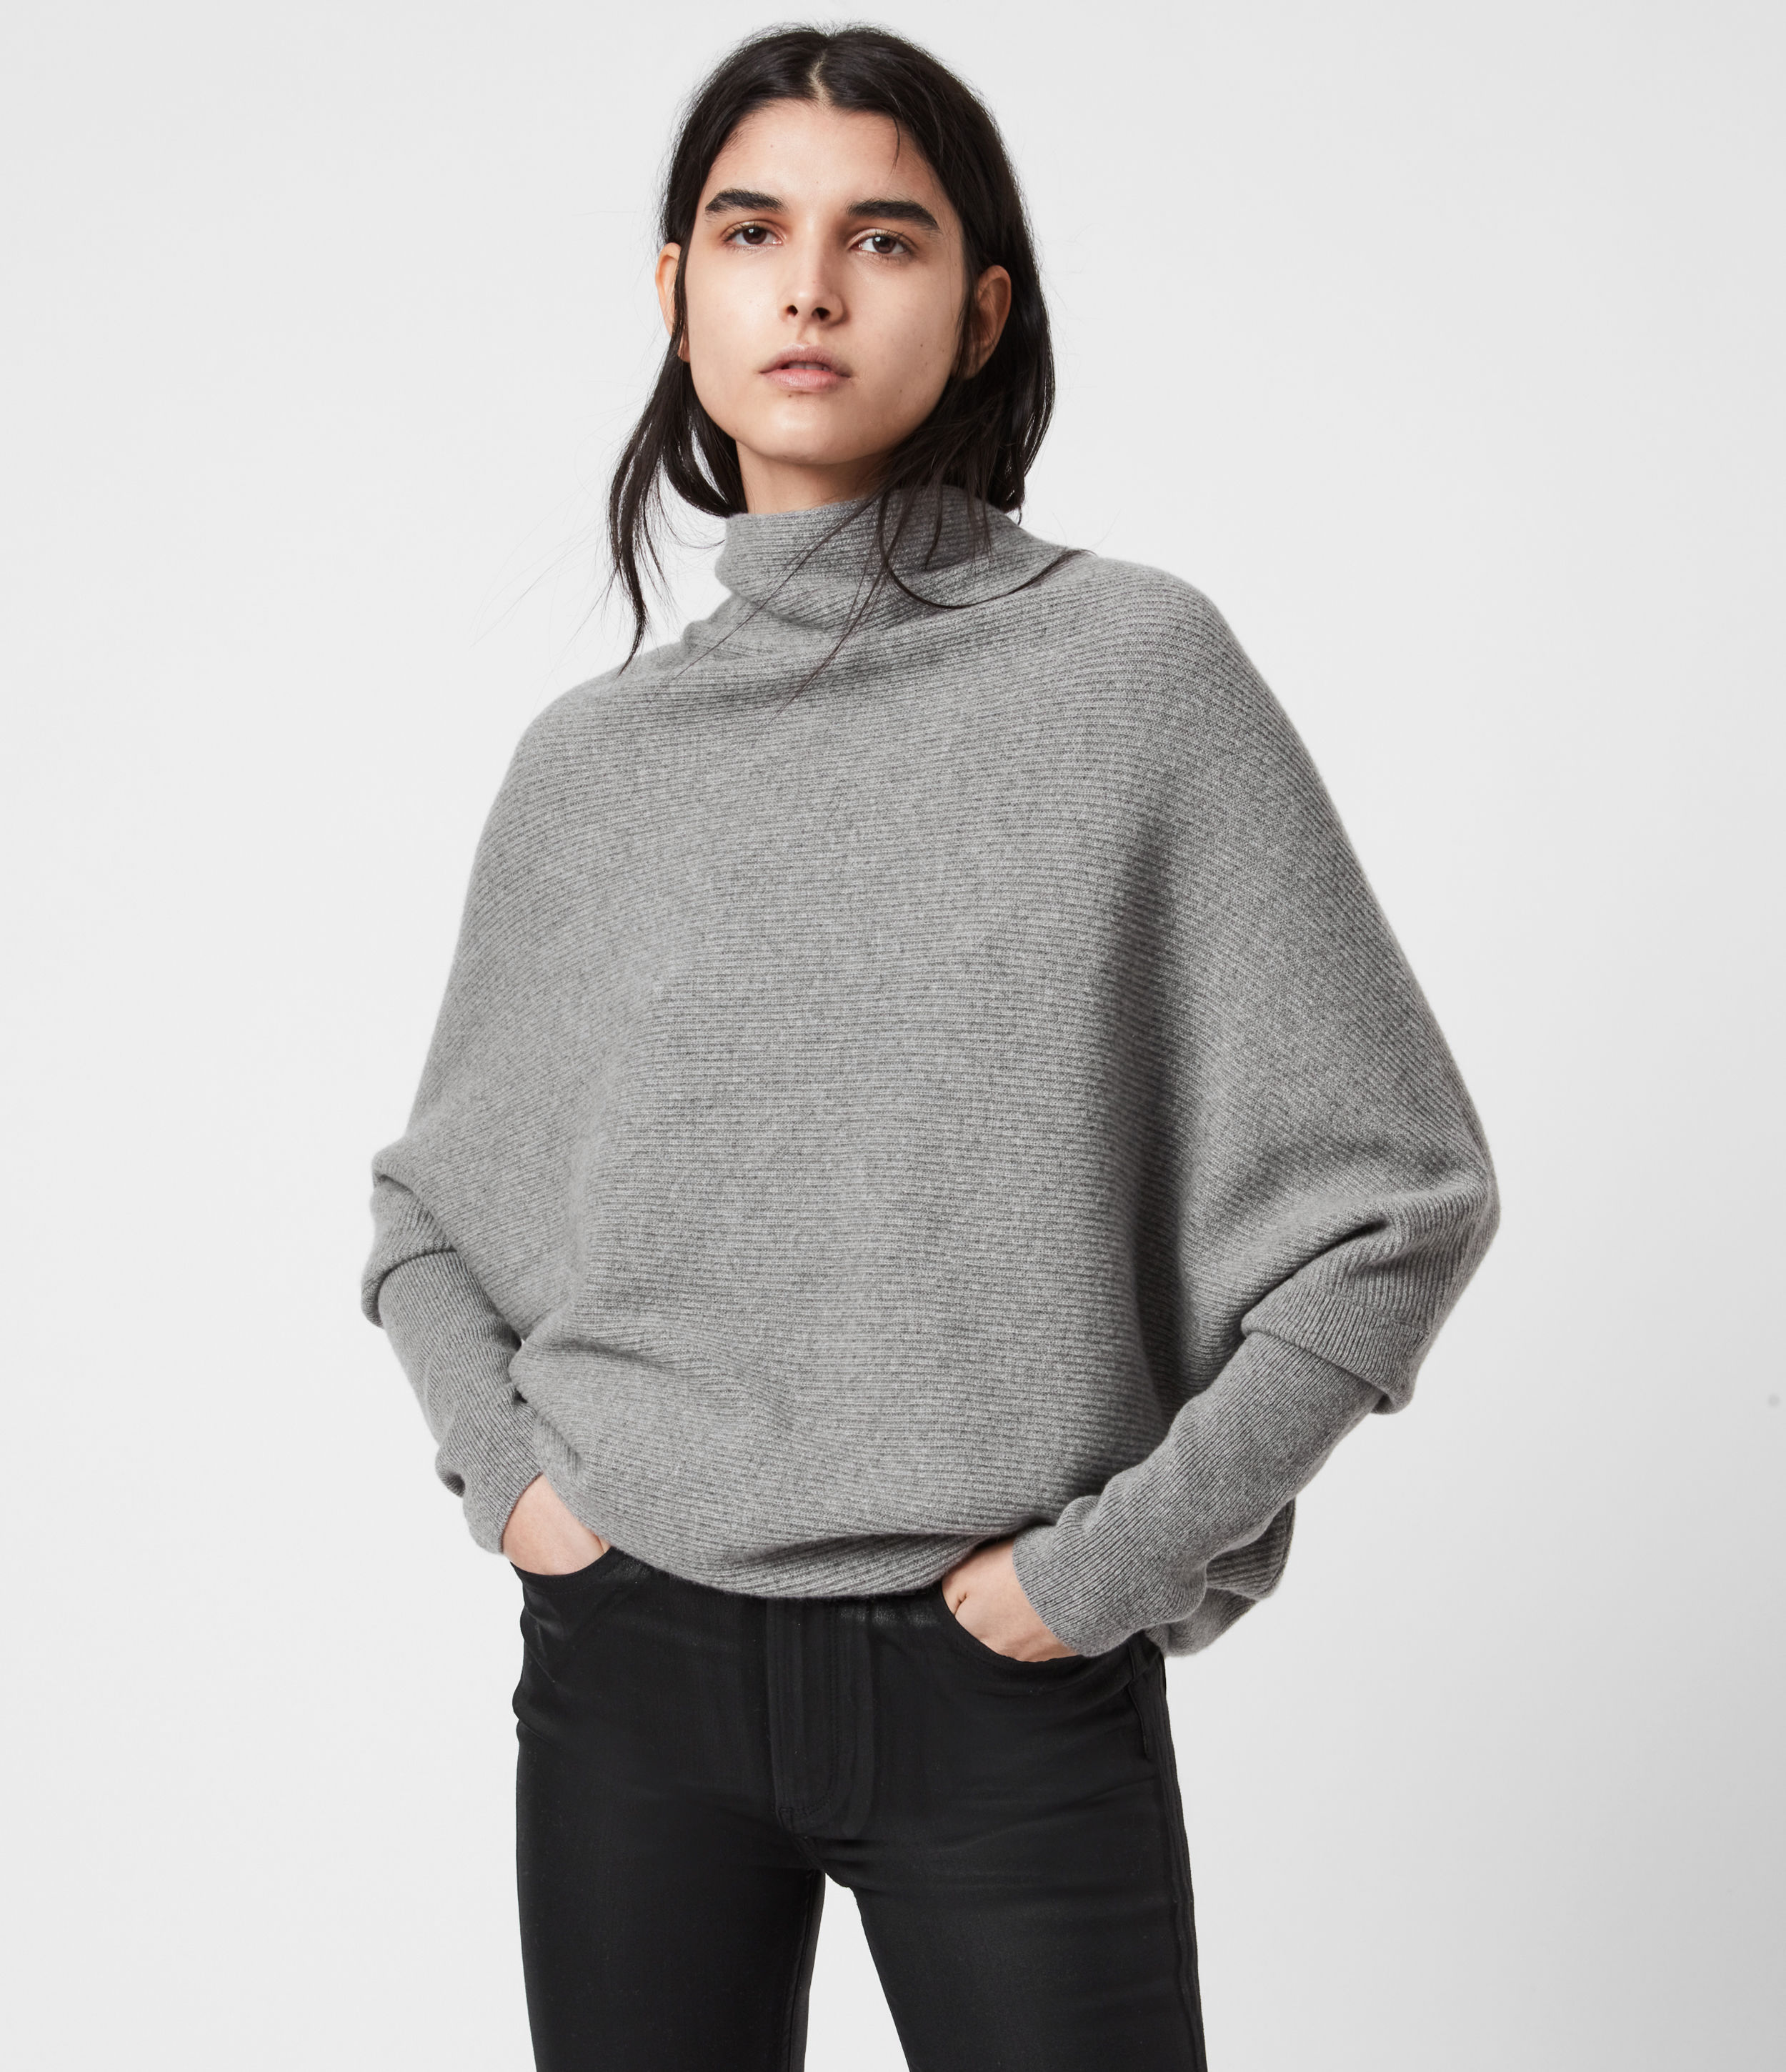 AllSaints Women's Cashmere Relaxed Fit Pullover Funnel Neck Ridley Jumper, Grey, Size: M